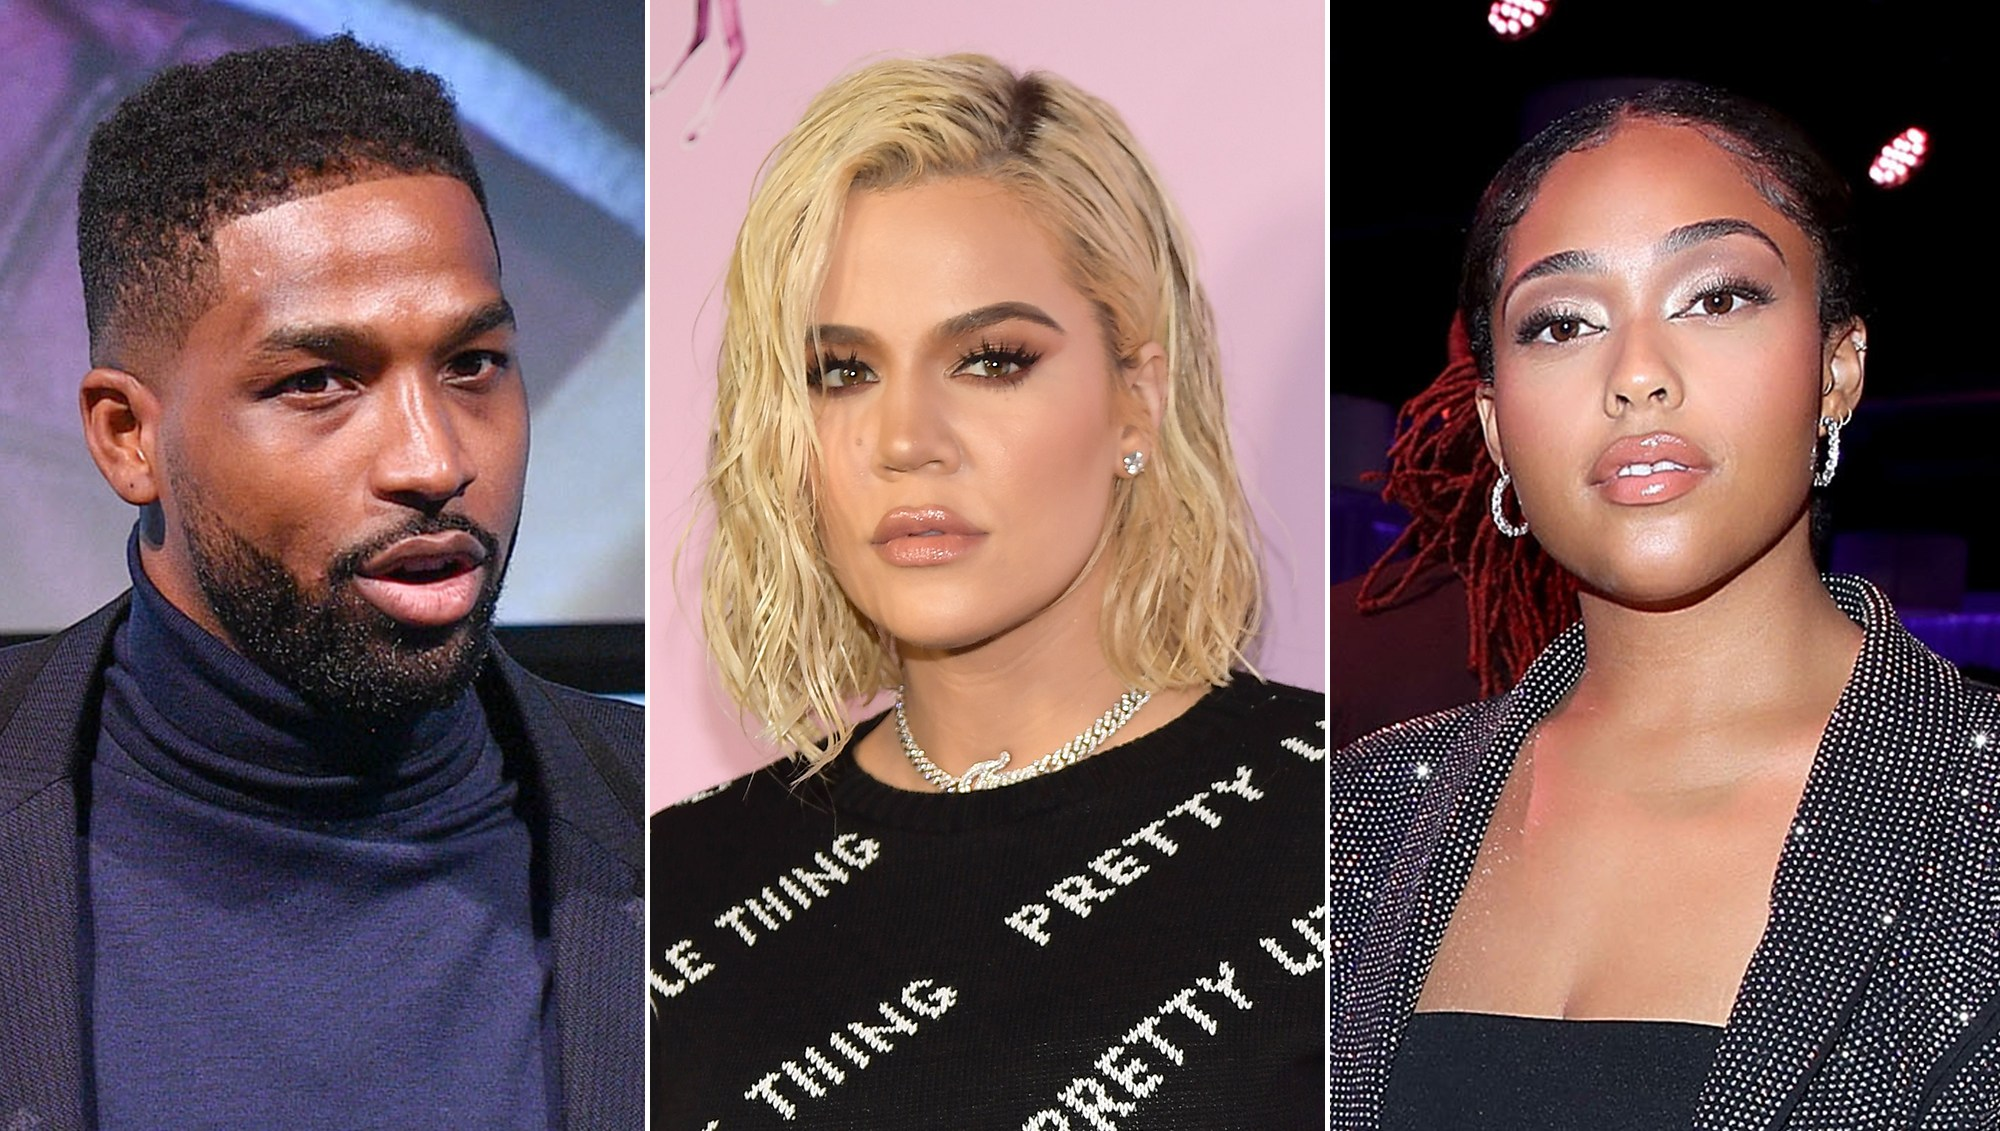 Khloe Kardashian Posts About Her 'Worst Pain' After Tristan Thompson and Jordyn Woods Scandal